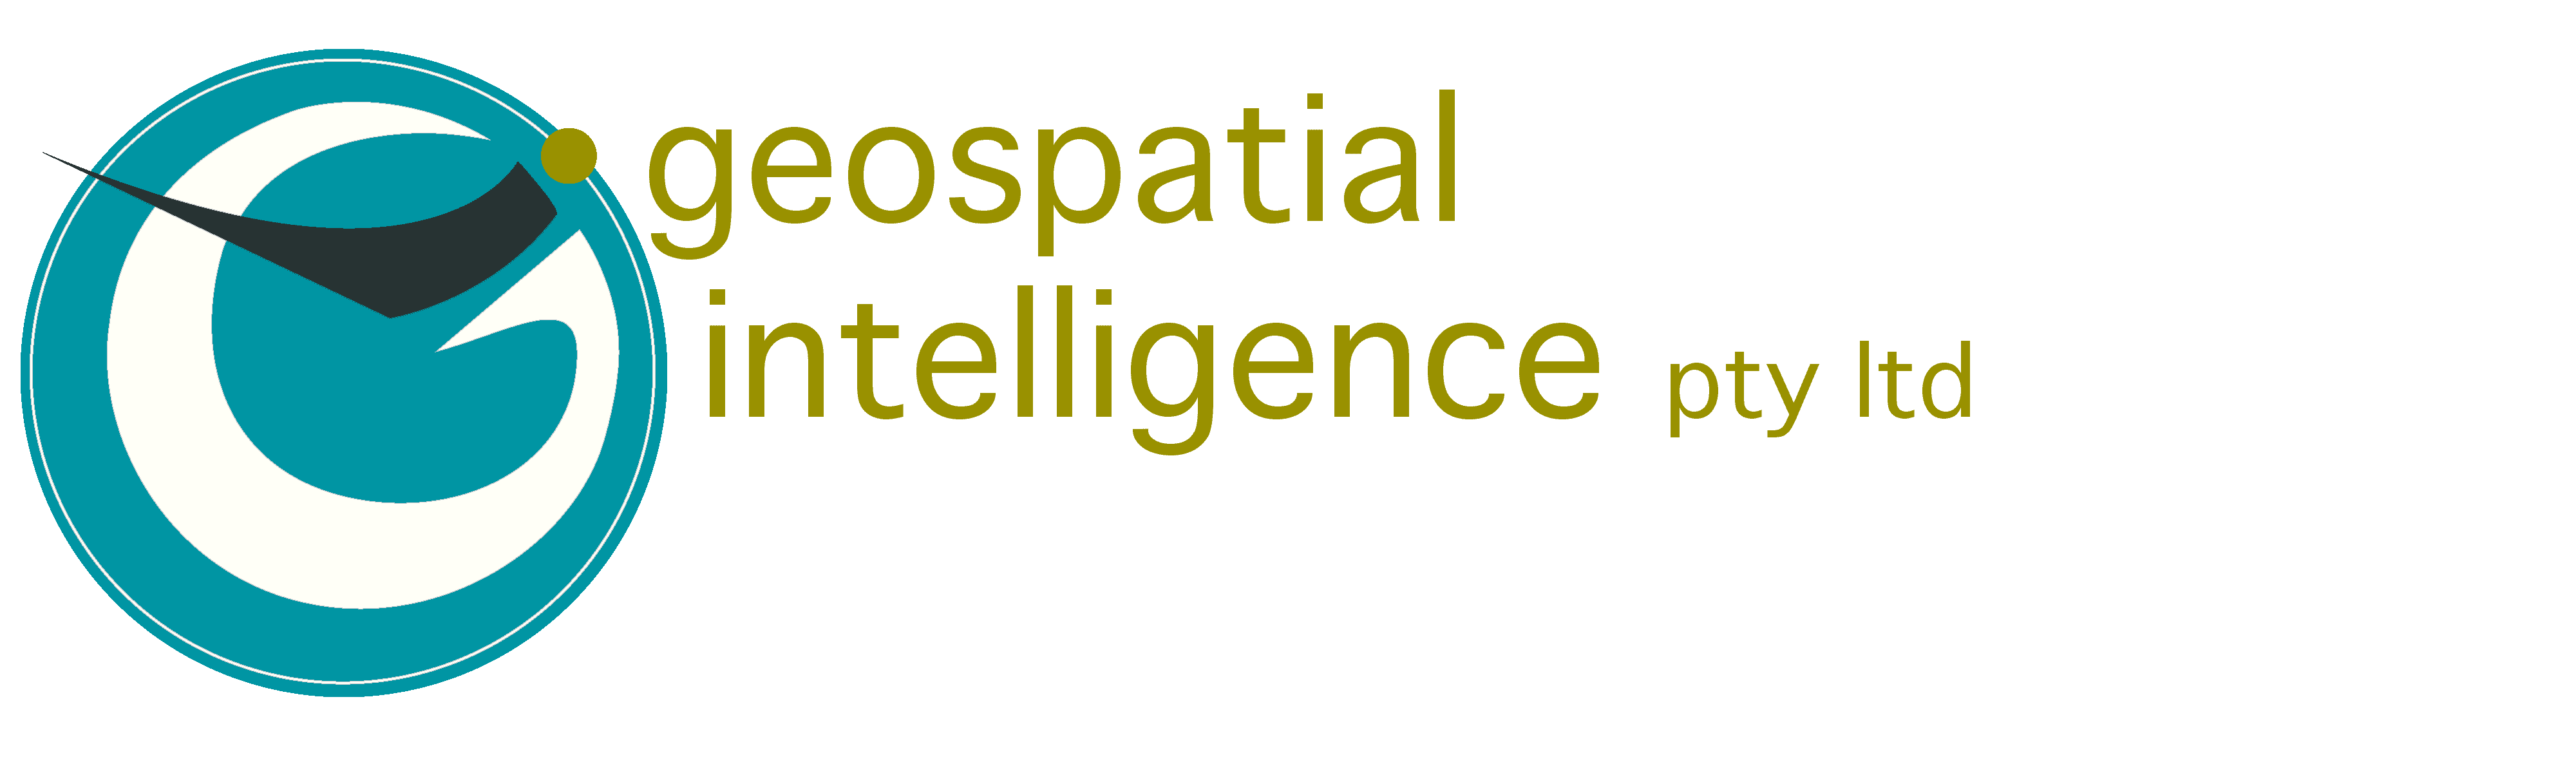 Geospatial Intelligence Pty Ltd